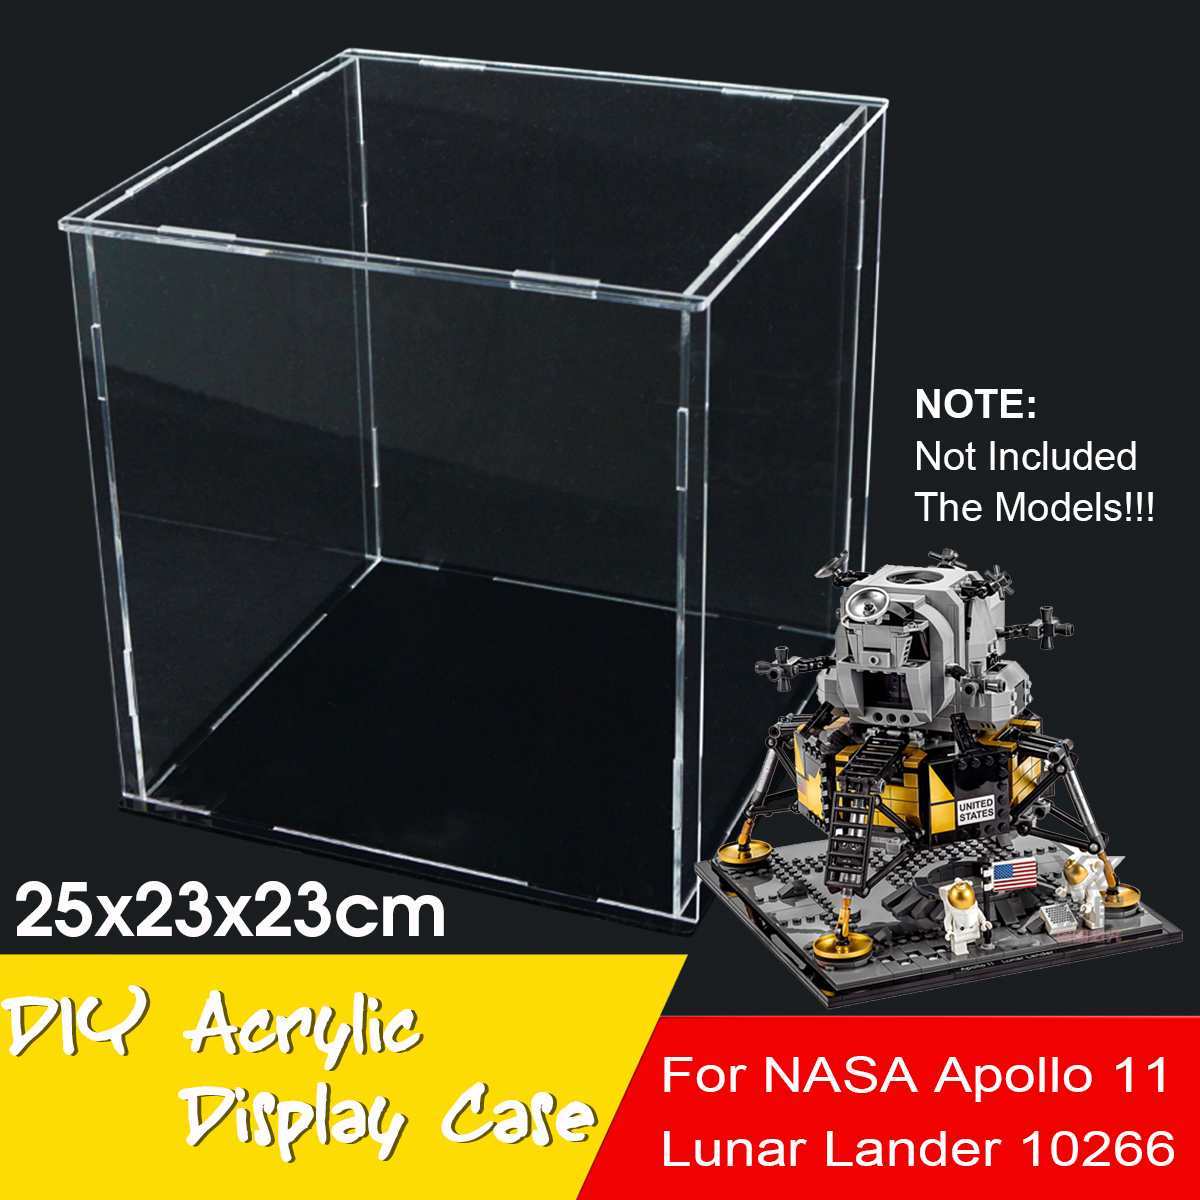 NEW 25x23x23cm Transparent Clear Acrylic Display Case Show Box For Lego For NASA For Apollo Lunar Lander Bricks Toy Model